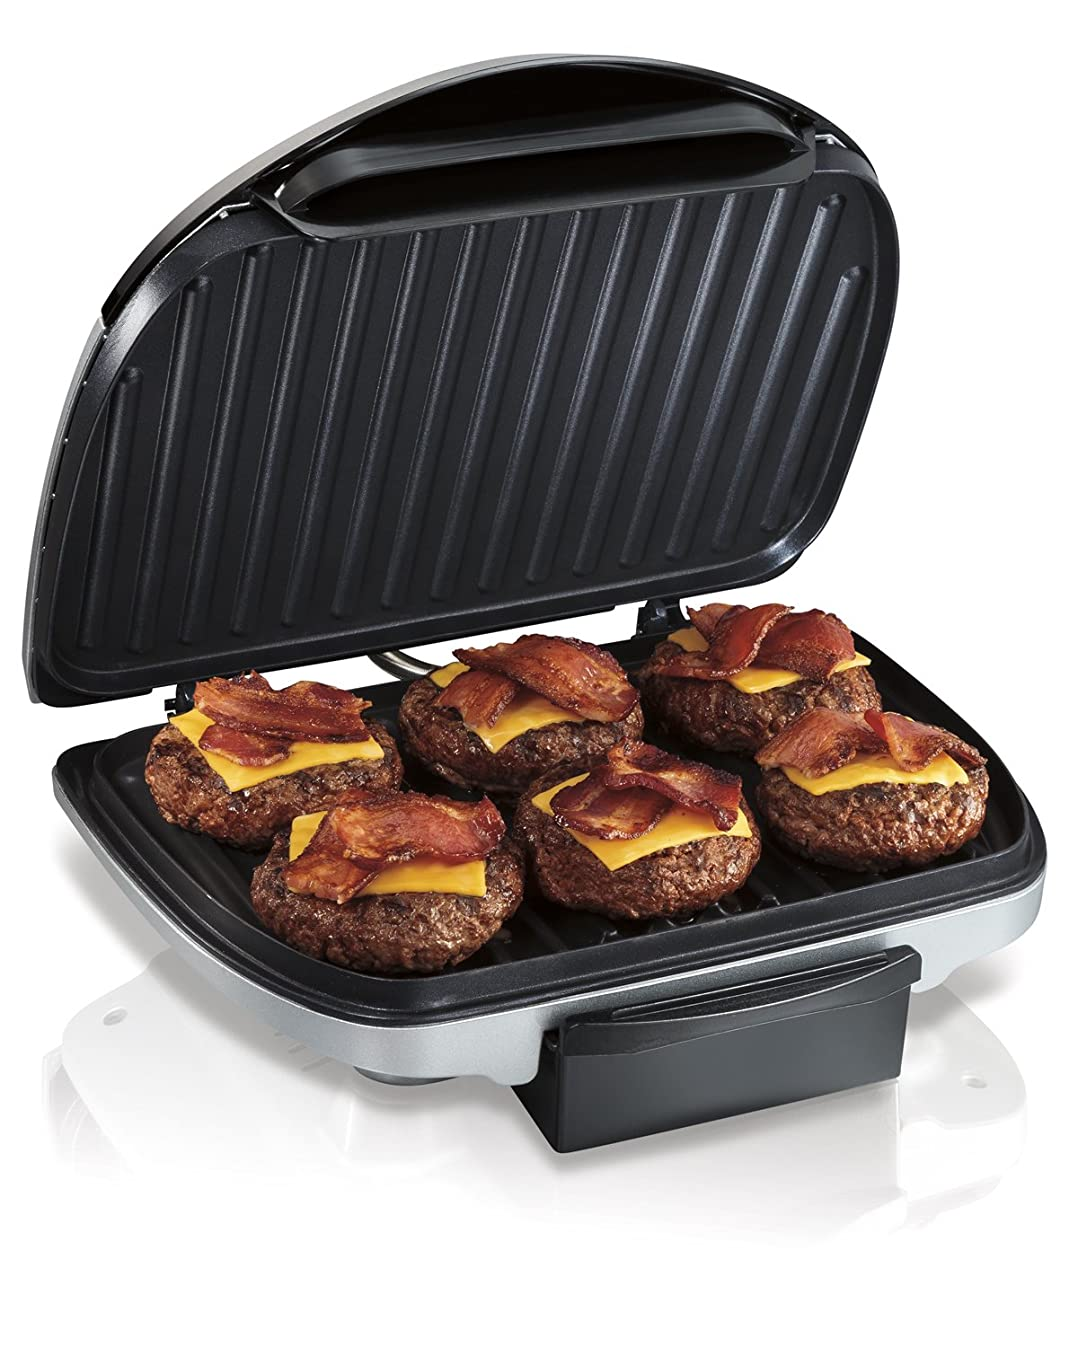 Hamilton Beach (25371) Electric Indoor Grill with Non Stick Plates, 90